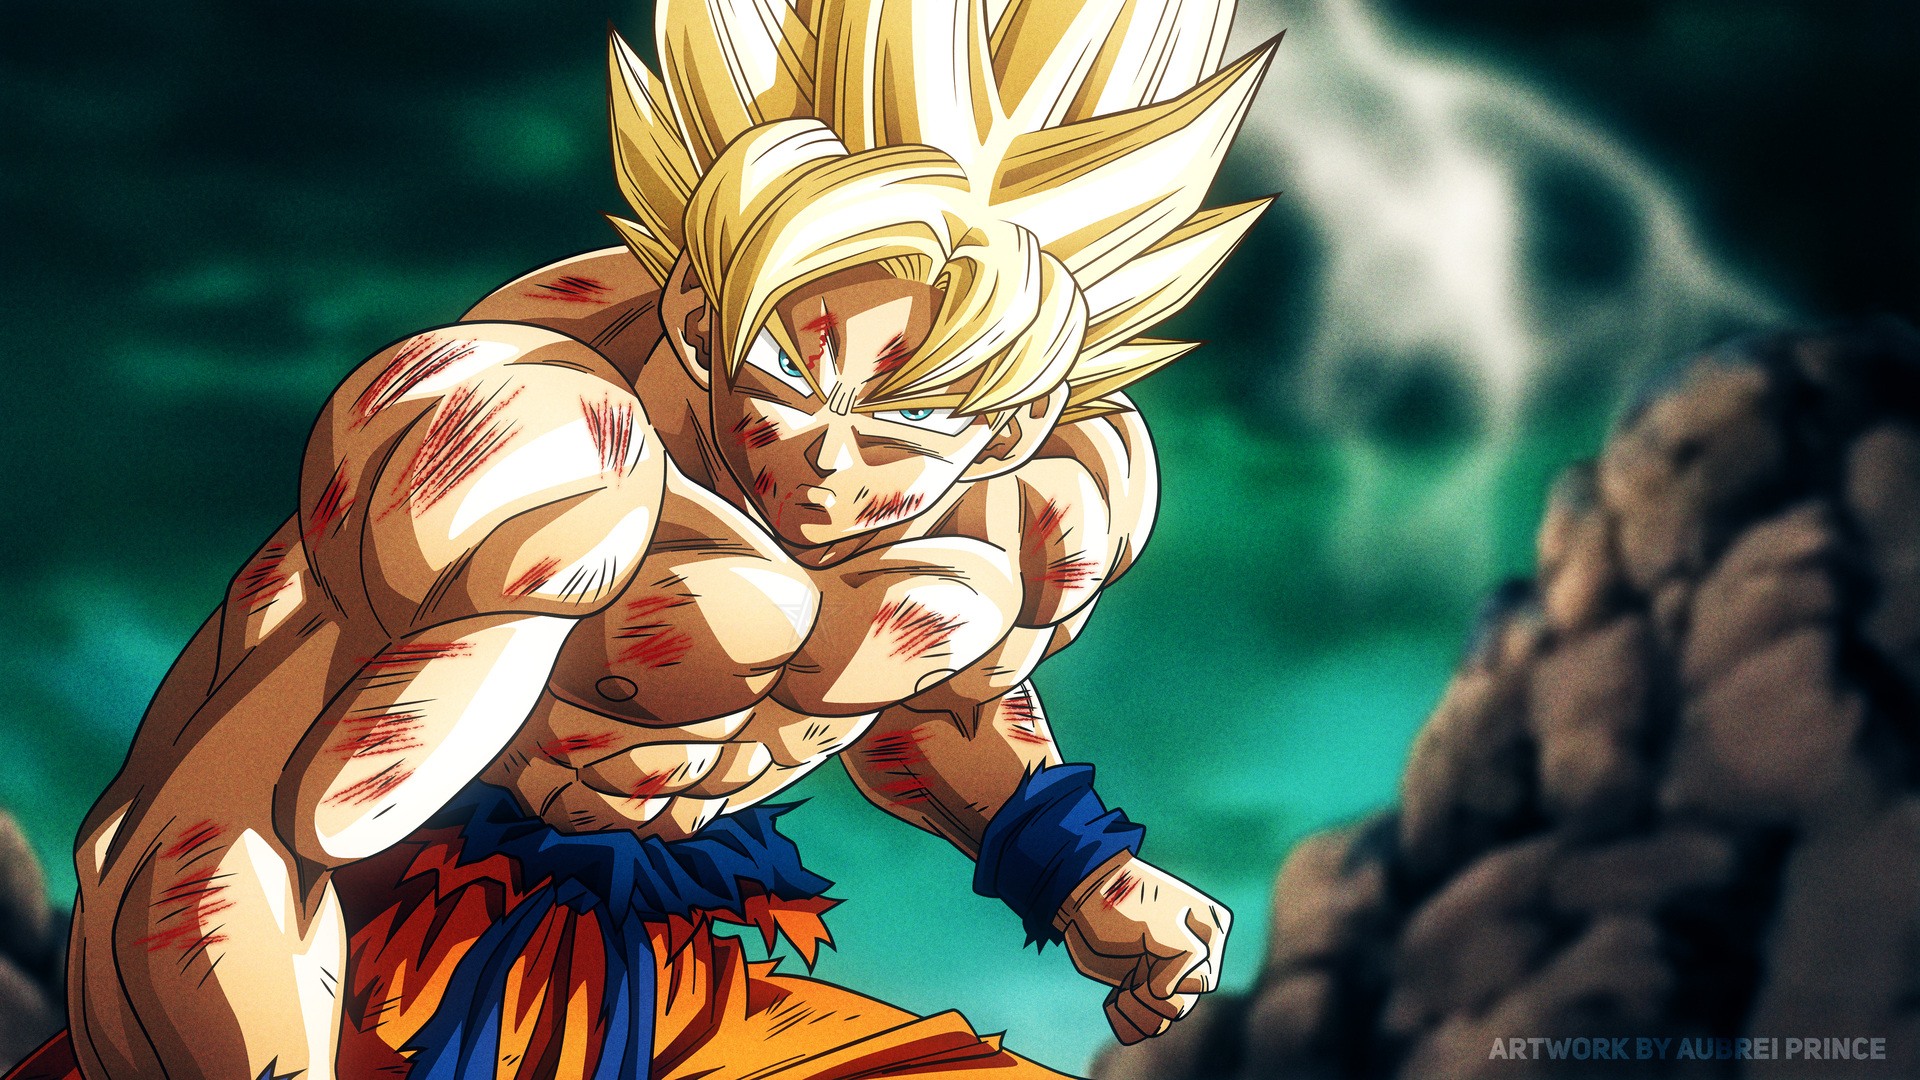 1920x1080 Super Saiyan Son Goku Dragon Ball Z 4k Laptop Full Hd